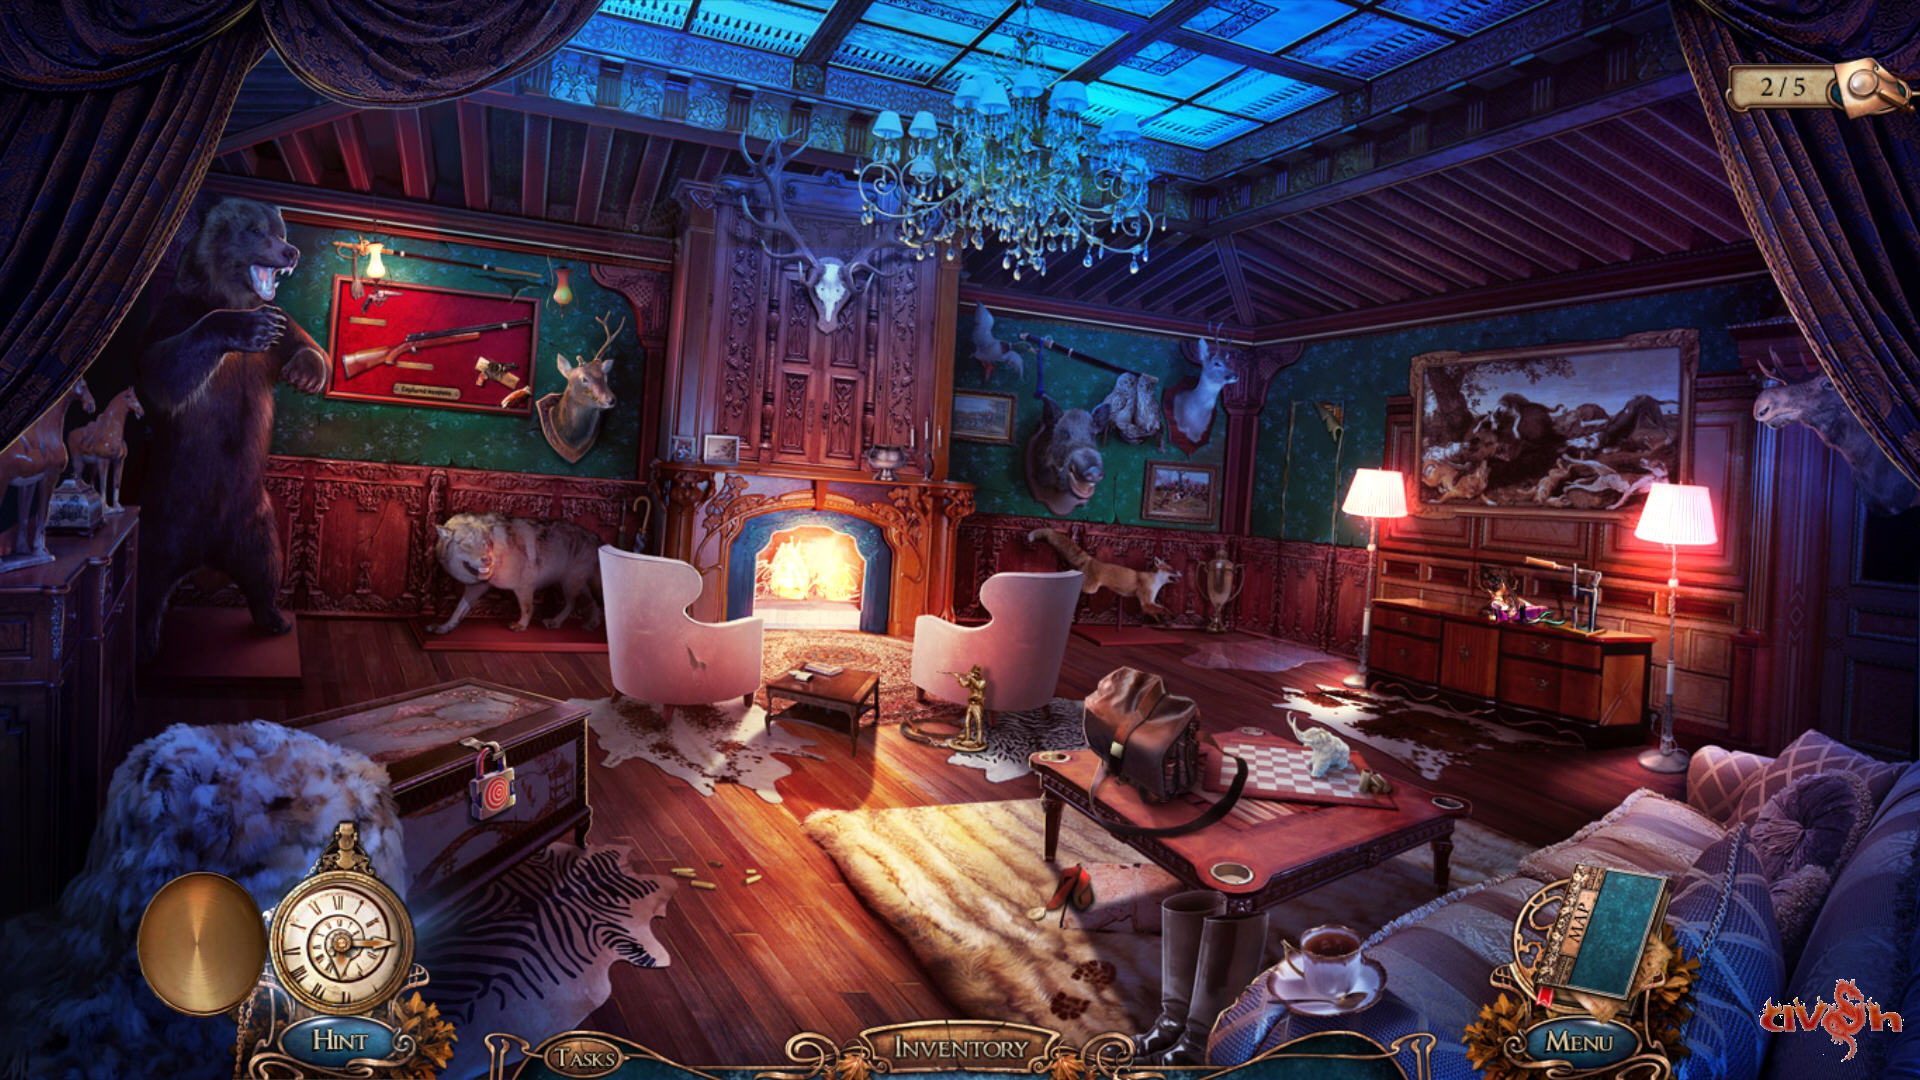 Grim Tales 6 - The Vengeance Screenshots eCards Lösung Review Saves Forum News Demo